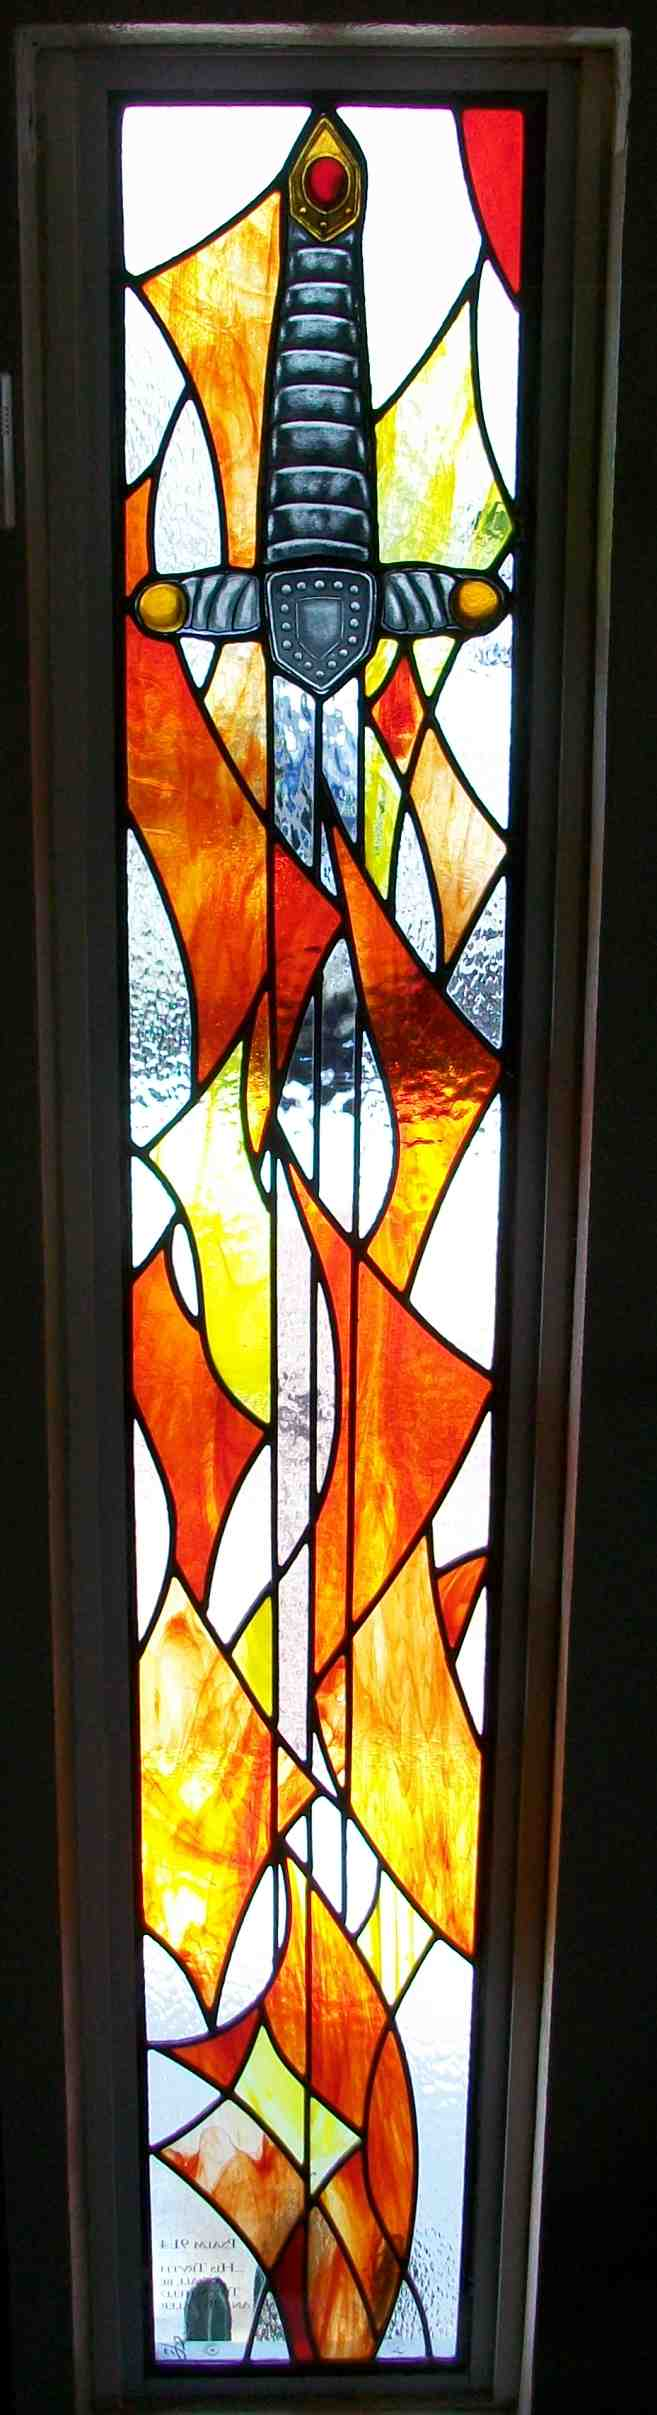 Custom Stained Glass Window, Traditional Design, with Sword